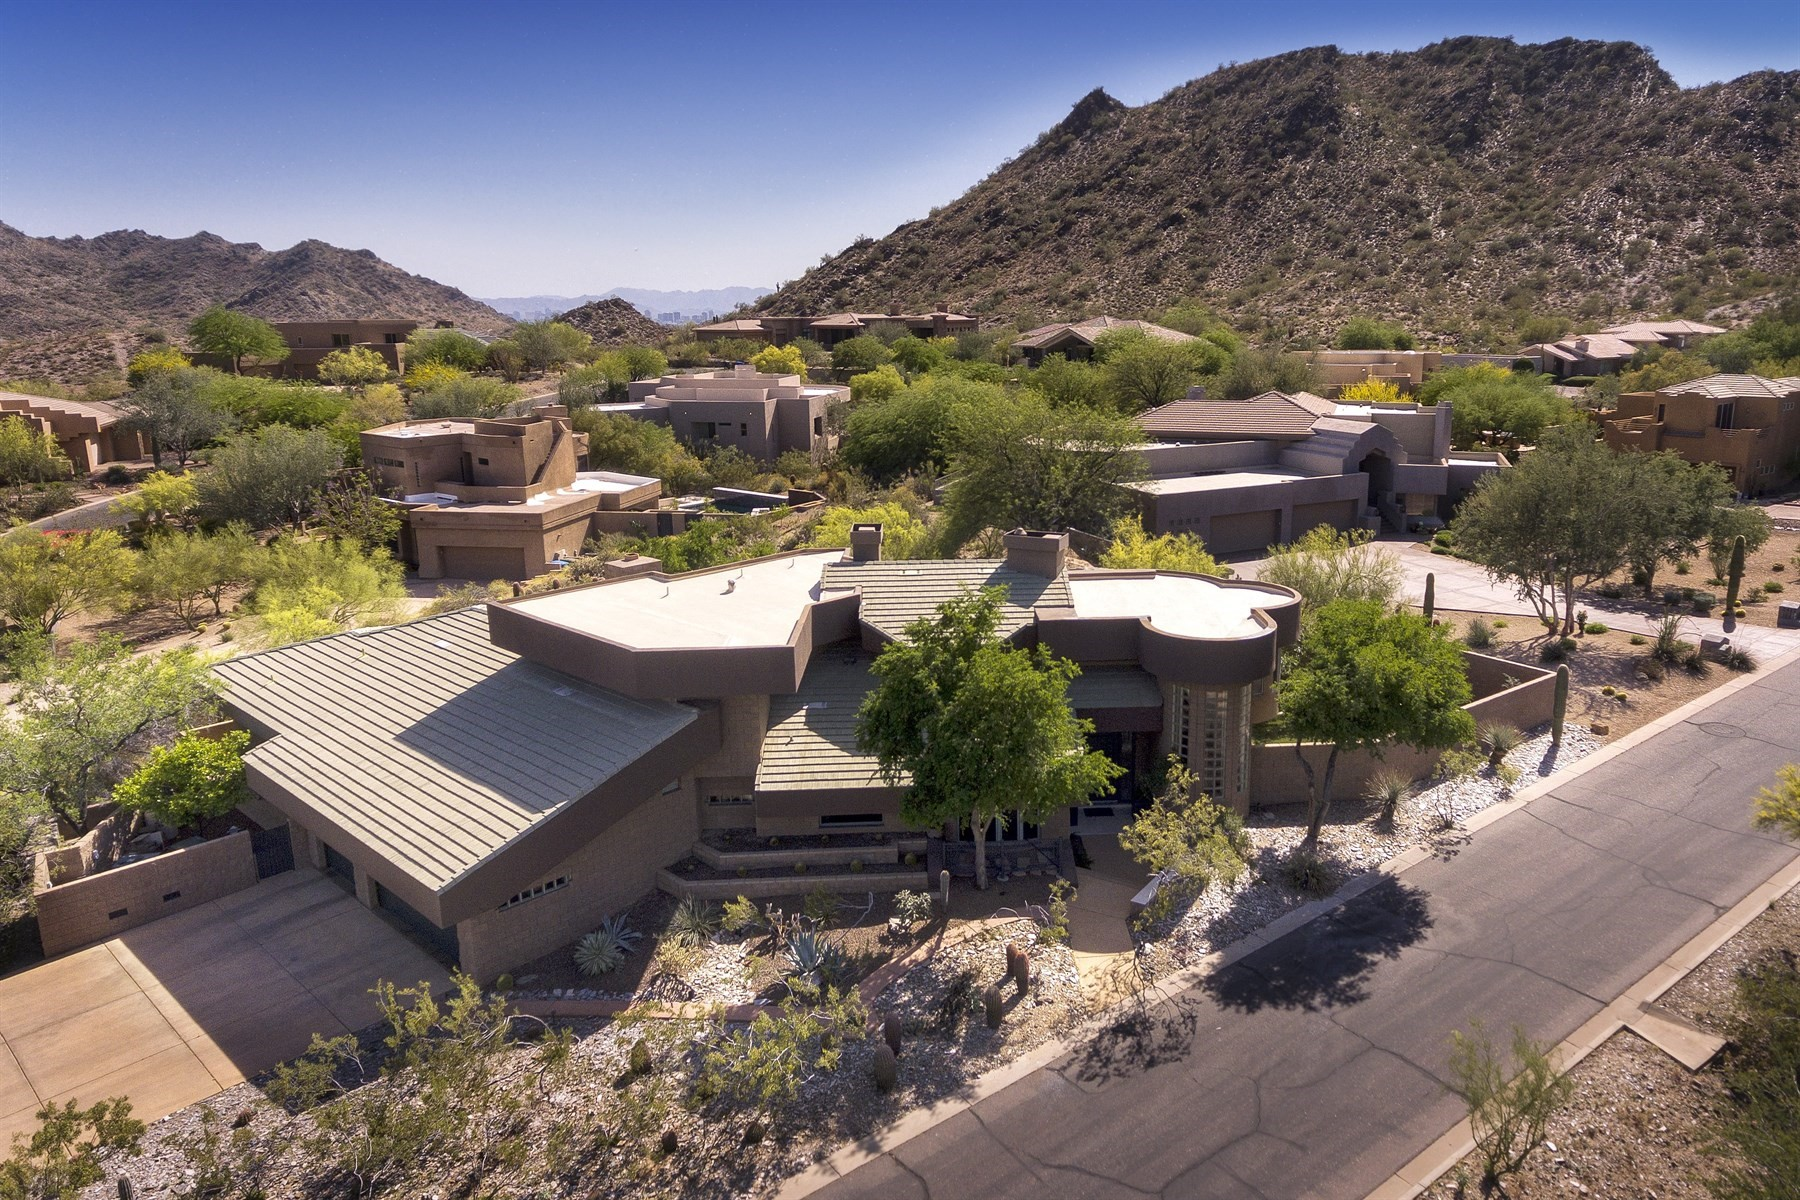 Single Family Home for Sale at Spectacular gated custom home with gorgeous views 9406 N 24th Way Phoenix, Arizona, 85028 United States